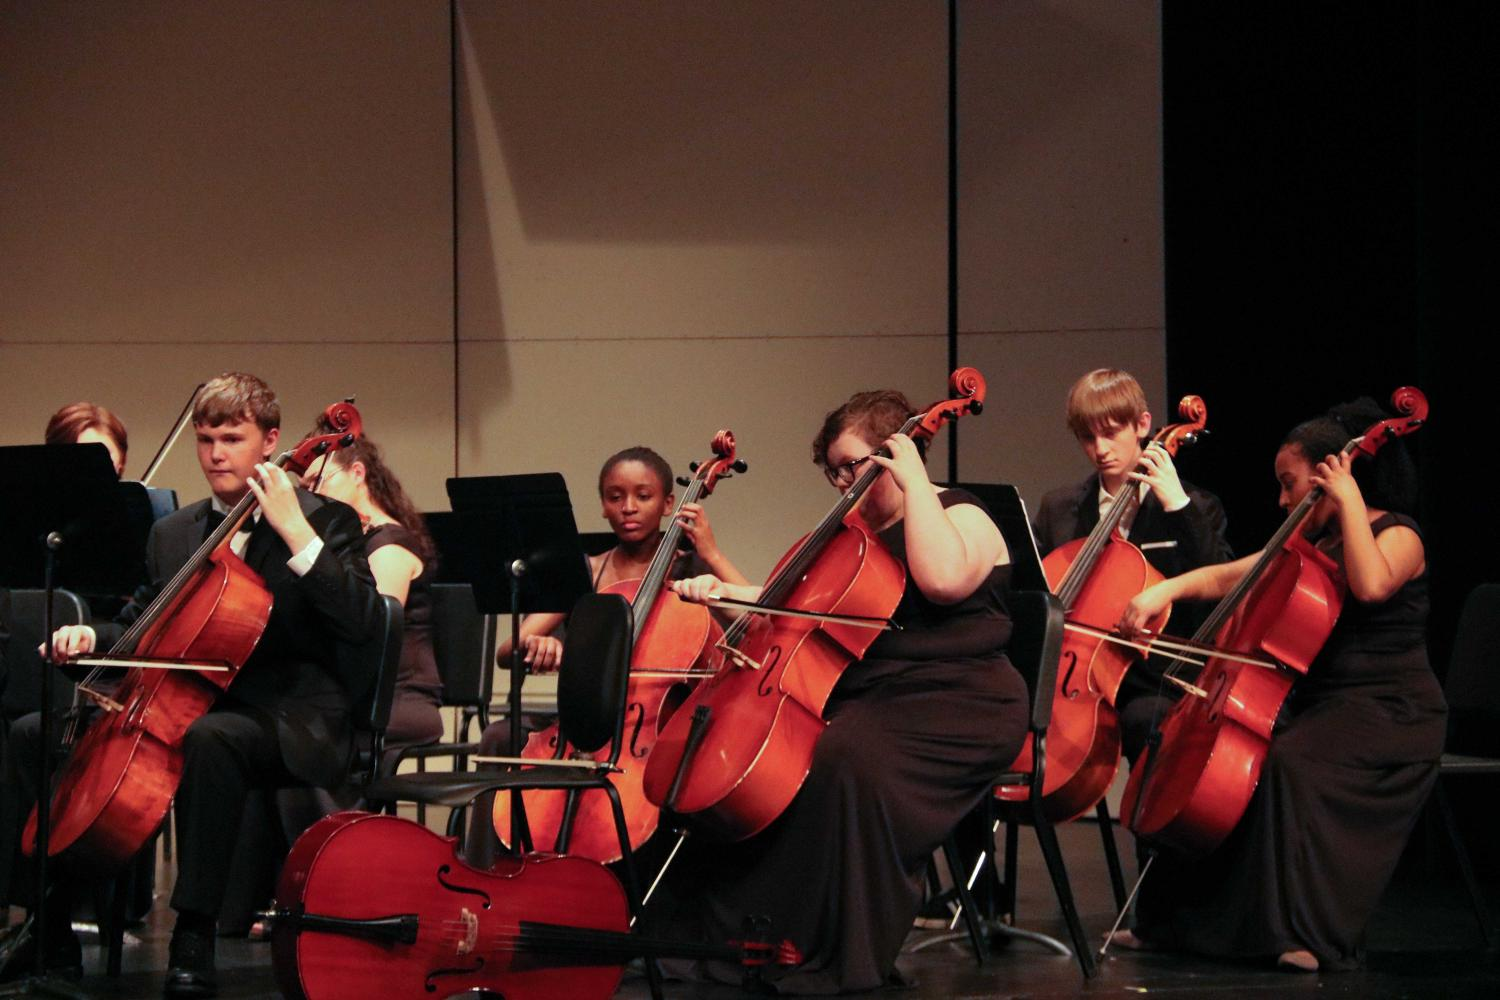 Concert Orchestra cello section performs